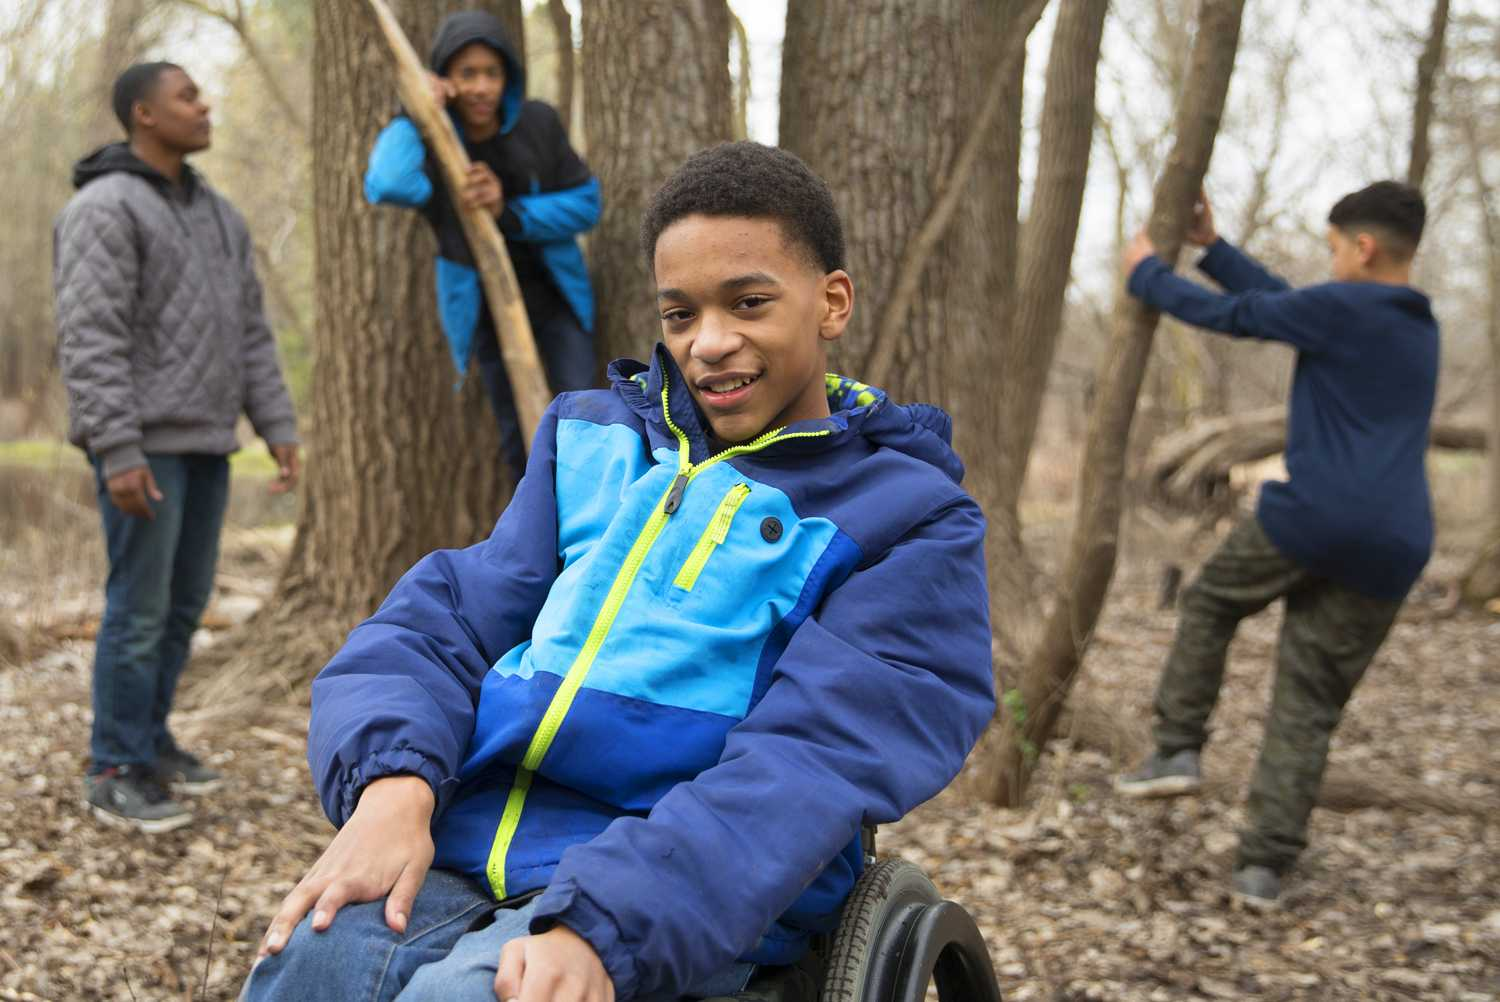 Elijah, who has cerebral palsy, enjoys playing in the woods with his buddies.